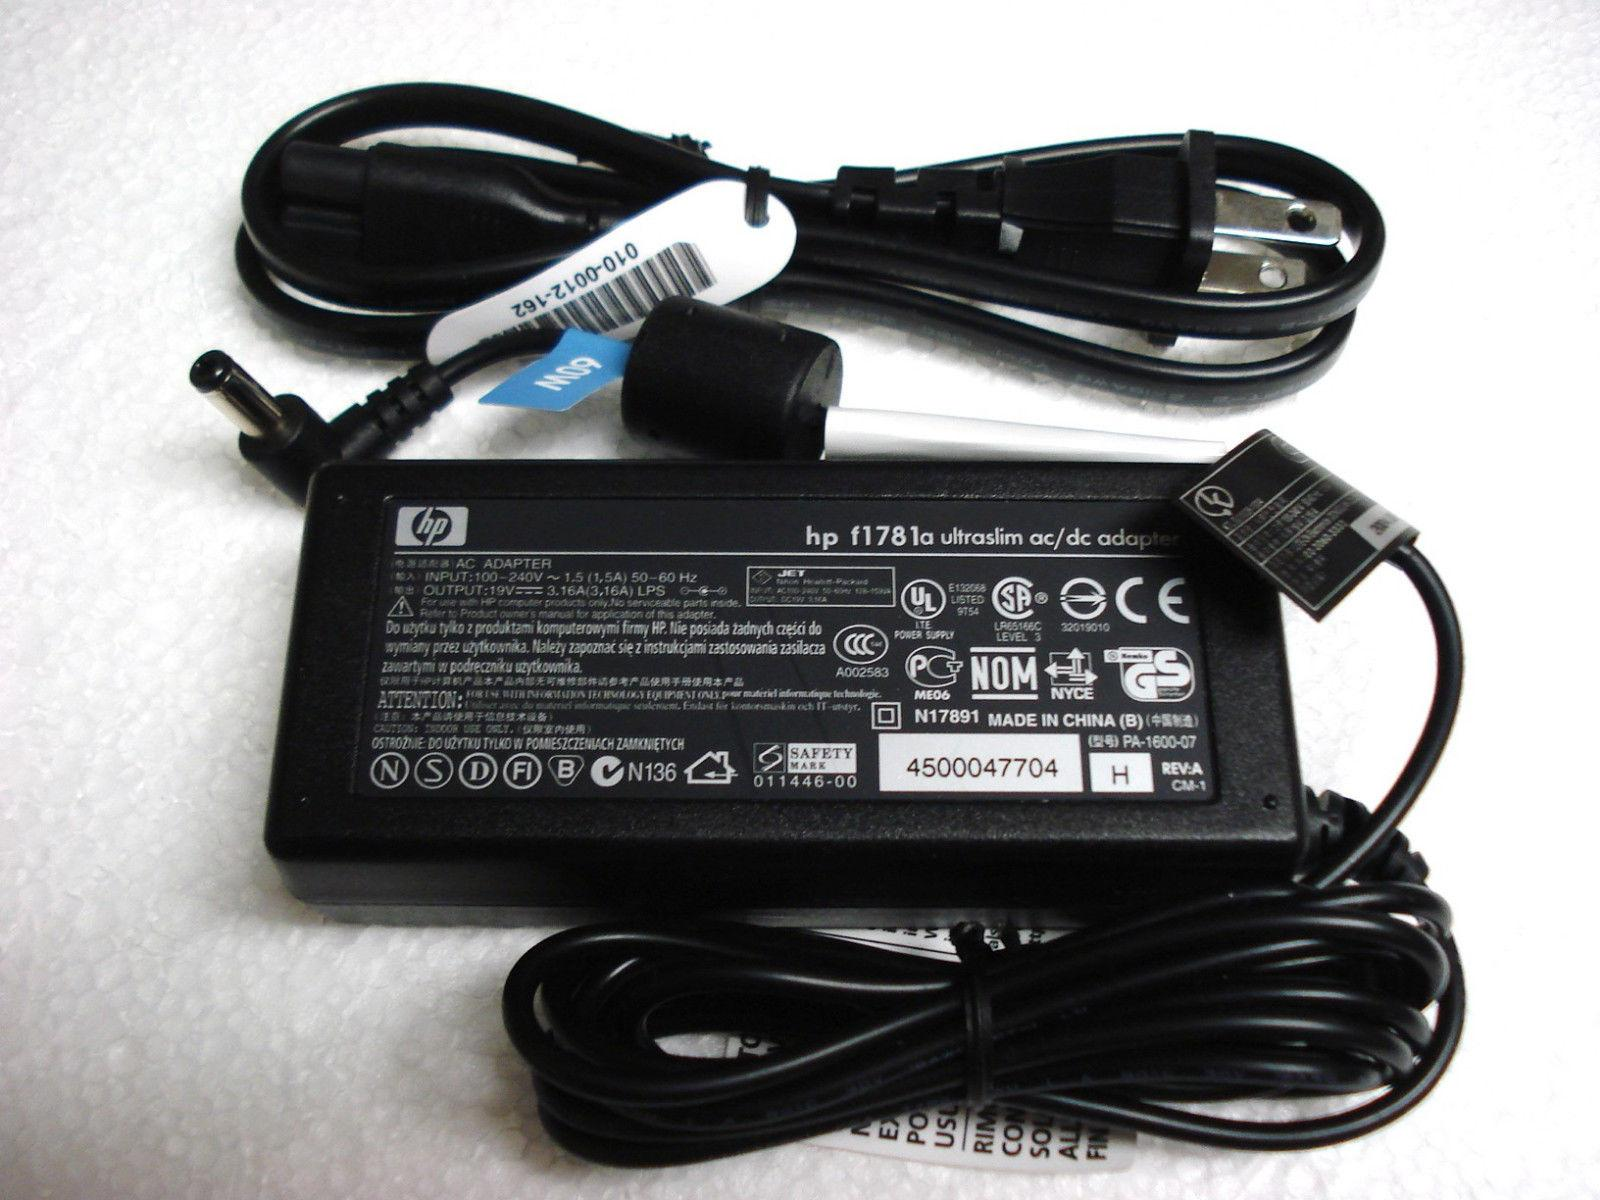 Buy Sell Cheapest Hp Compaq Charger Best Quality Product Deals 185v 35a Power Cable Laptop 65w Adaptor For Dv4 New Genuine Original Oem 60w 19v 316a Ac Adapter F1781a